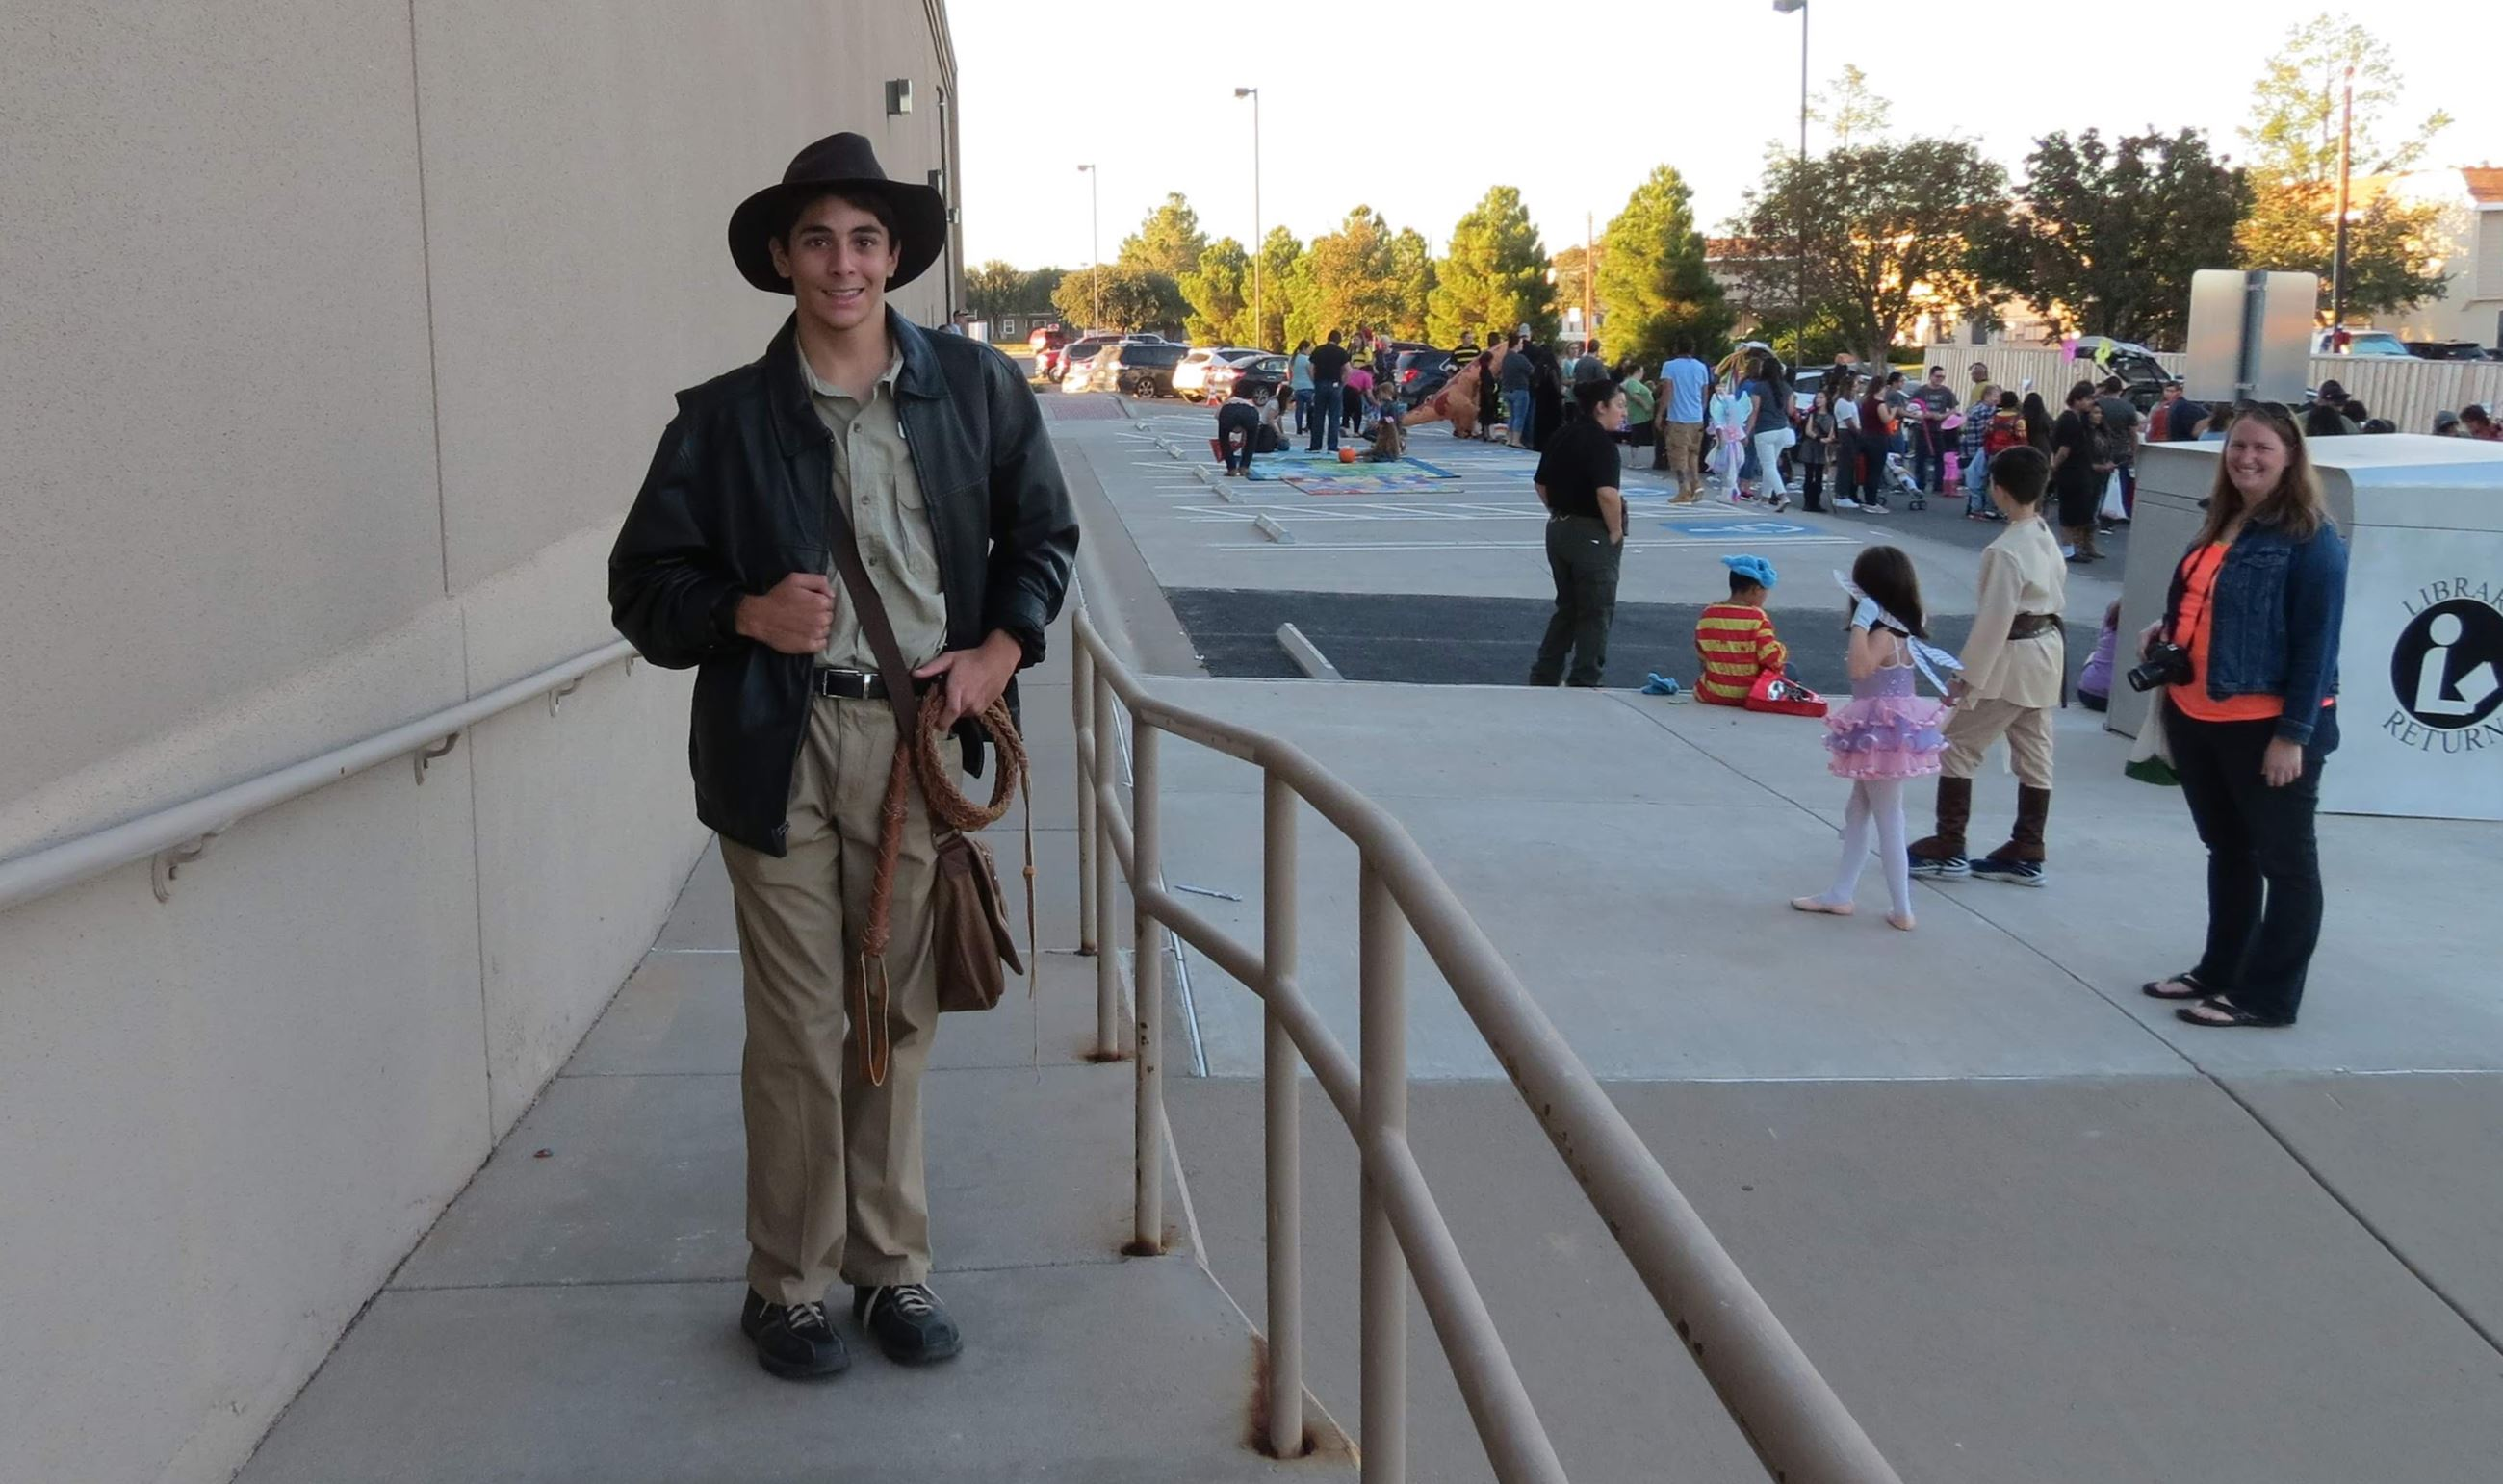 Boy dressed up as Indiana Jones.